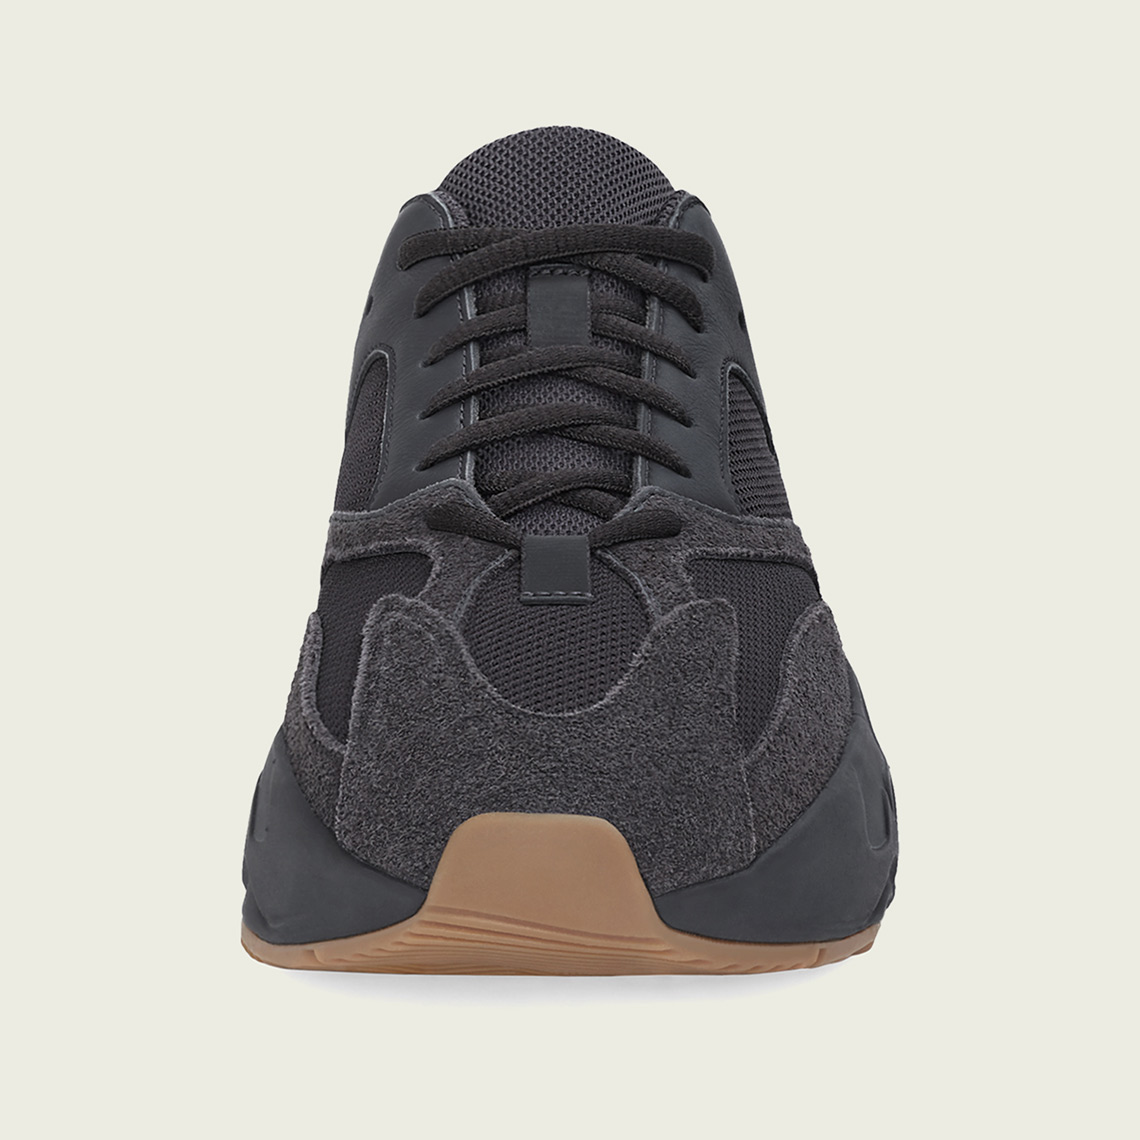 hot sale online b4cfc 891a9 adidas Yeezy 700 Utility Black FV5304 Release Date ...